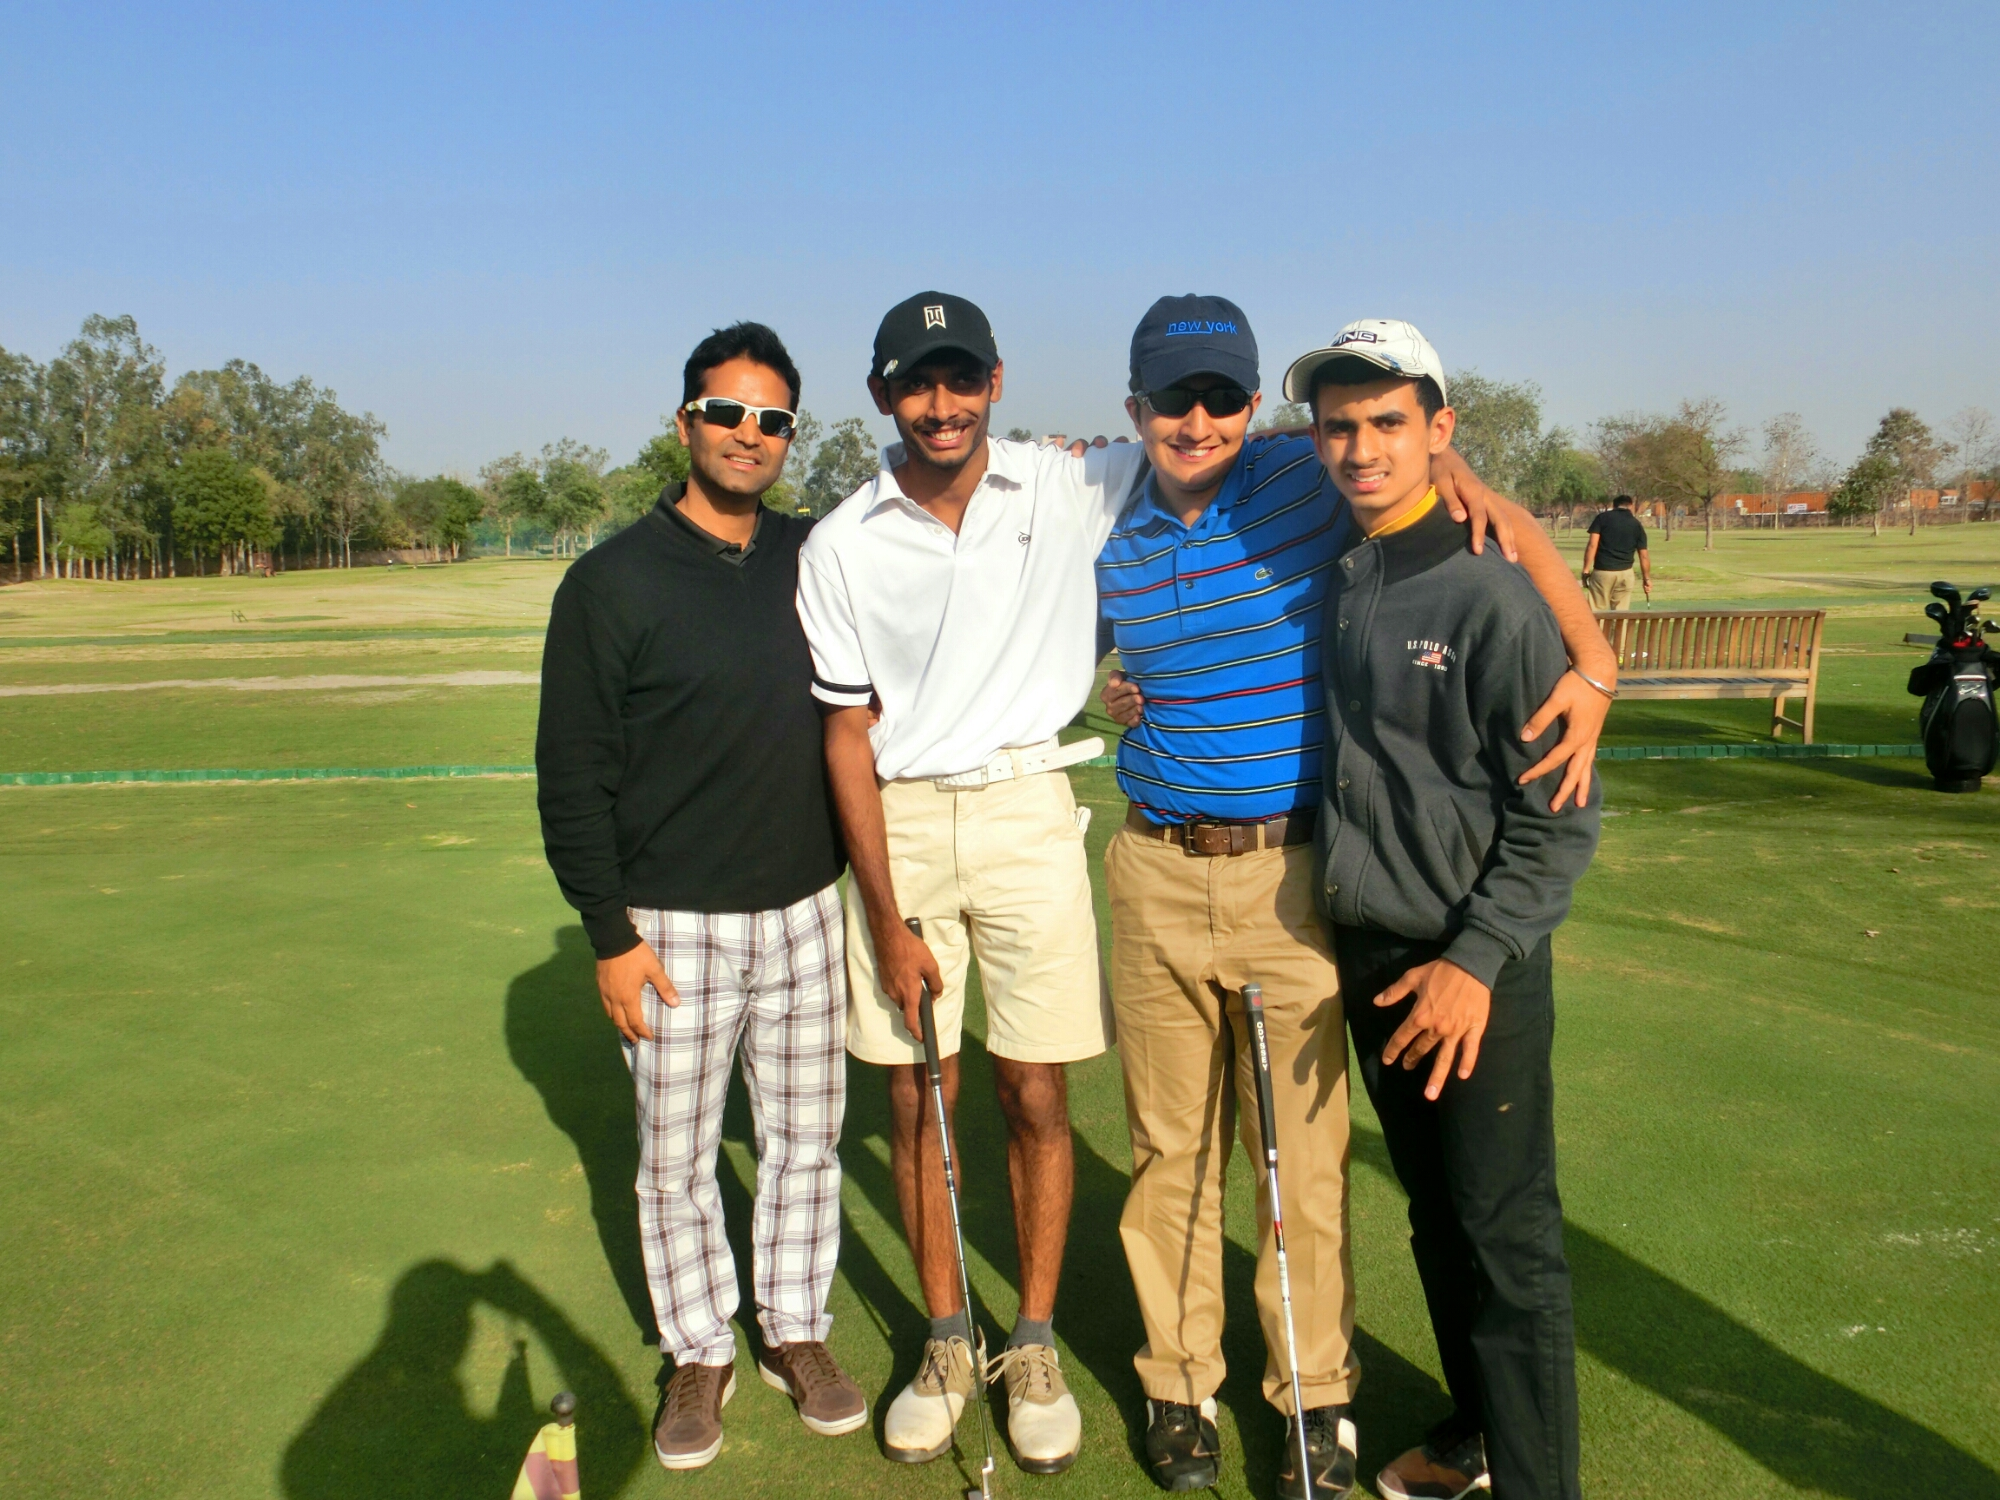 Indian paralympics golf team at hgc hamoni golf indian paralympics golf team at hgc altavistaventures